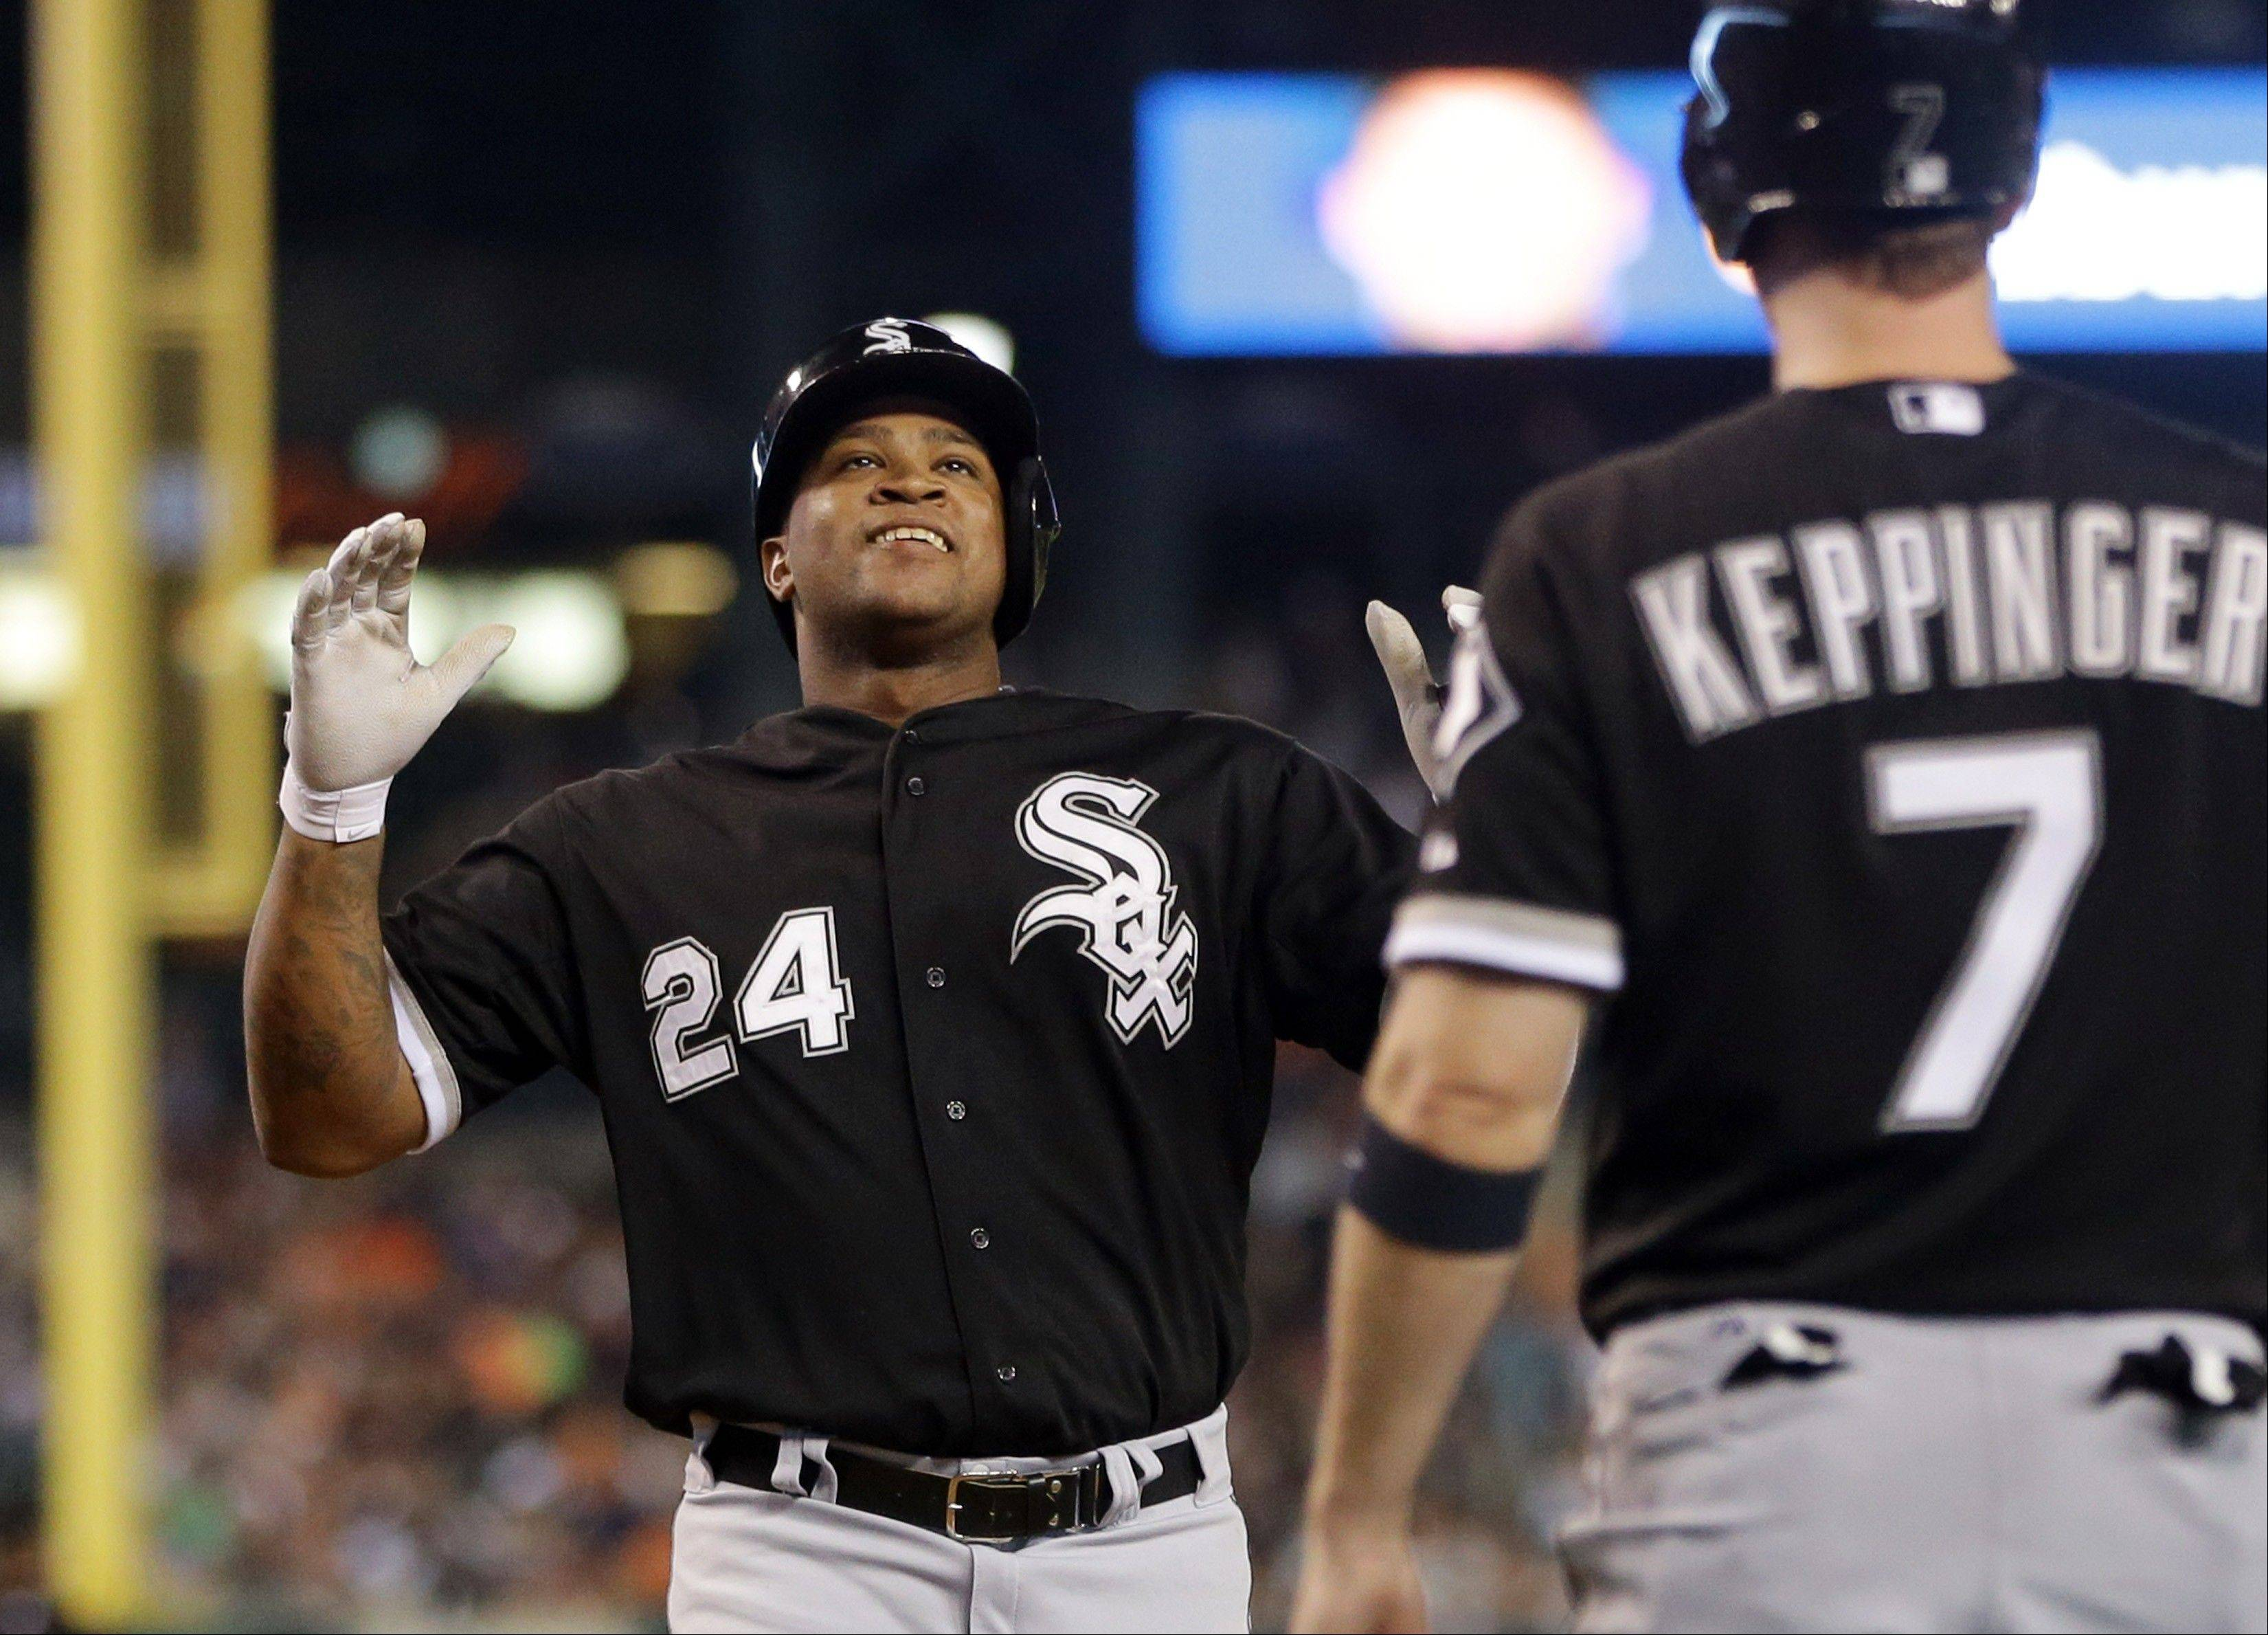 Chicago White Sox's Dayan Viciedo reaches home plate after connecting for a three-run home run off Detroit Tigers relief pitcher Al Alburquerque during the eighth inning of a baseball game in Detroit, Tuesday, July 9, 2013. (AP Photo/Carlos Osorio)